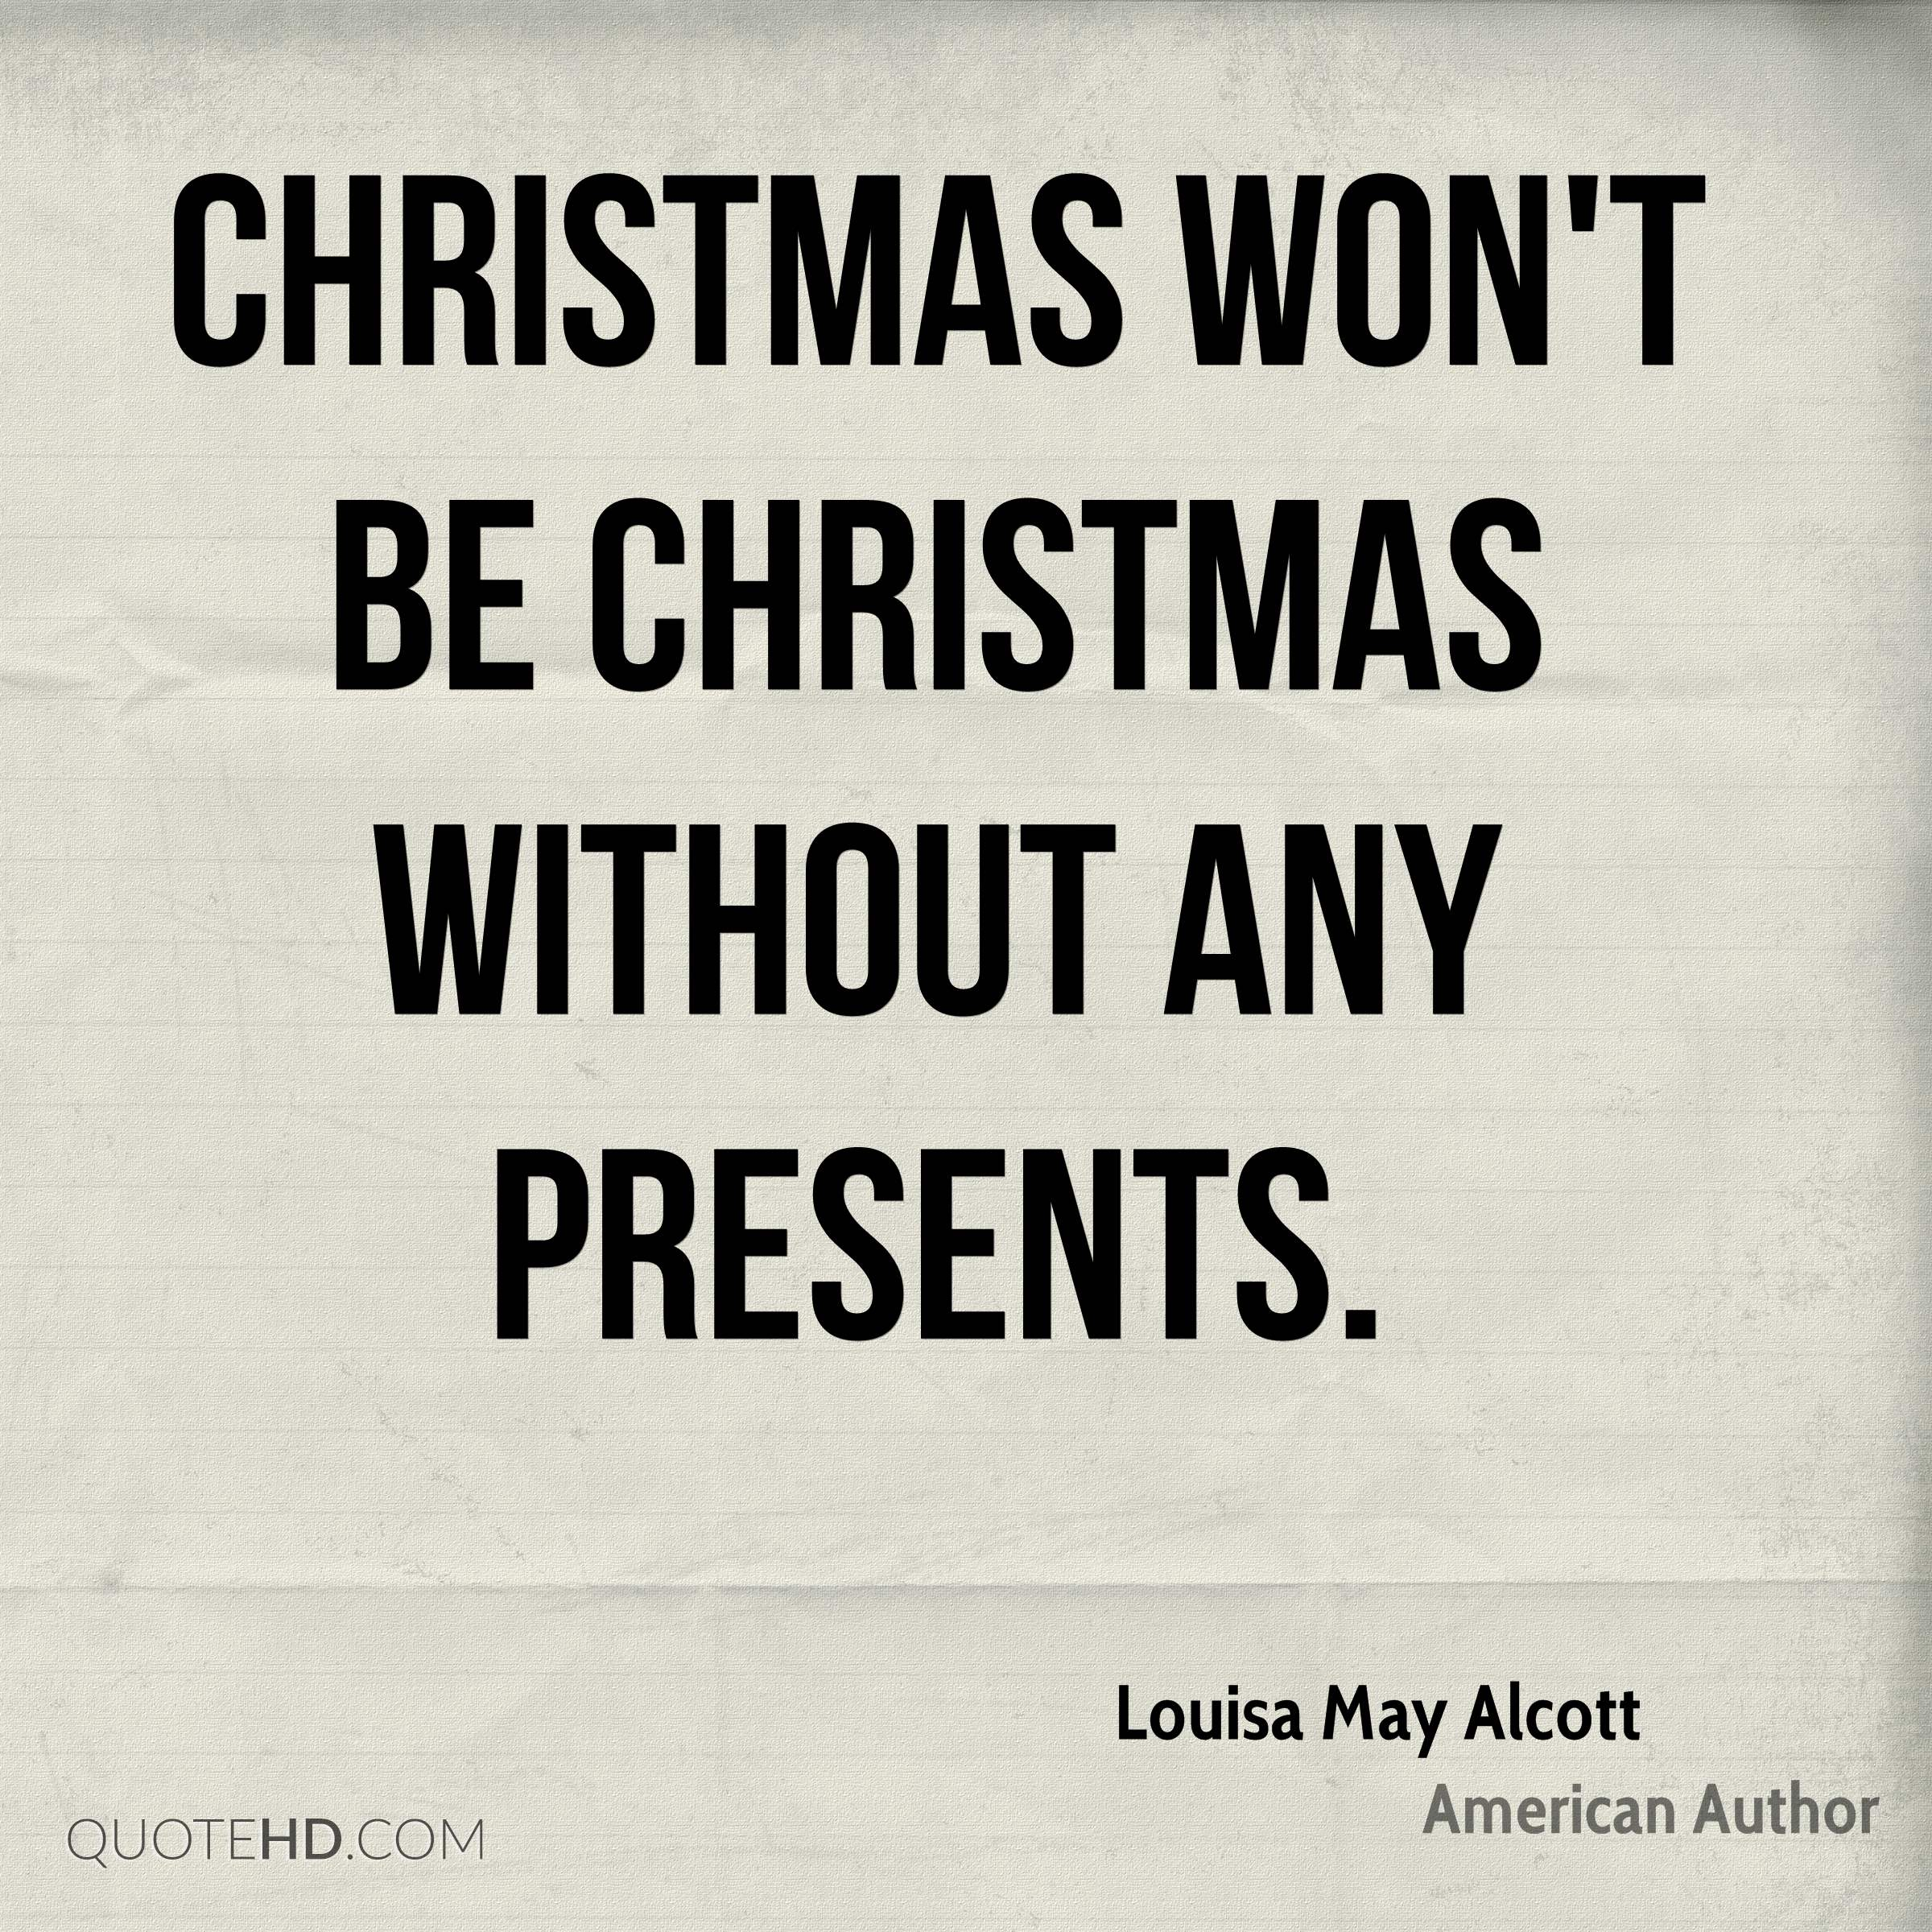 Louisa May Alcott Christmas Quotes | QuoteHD